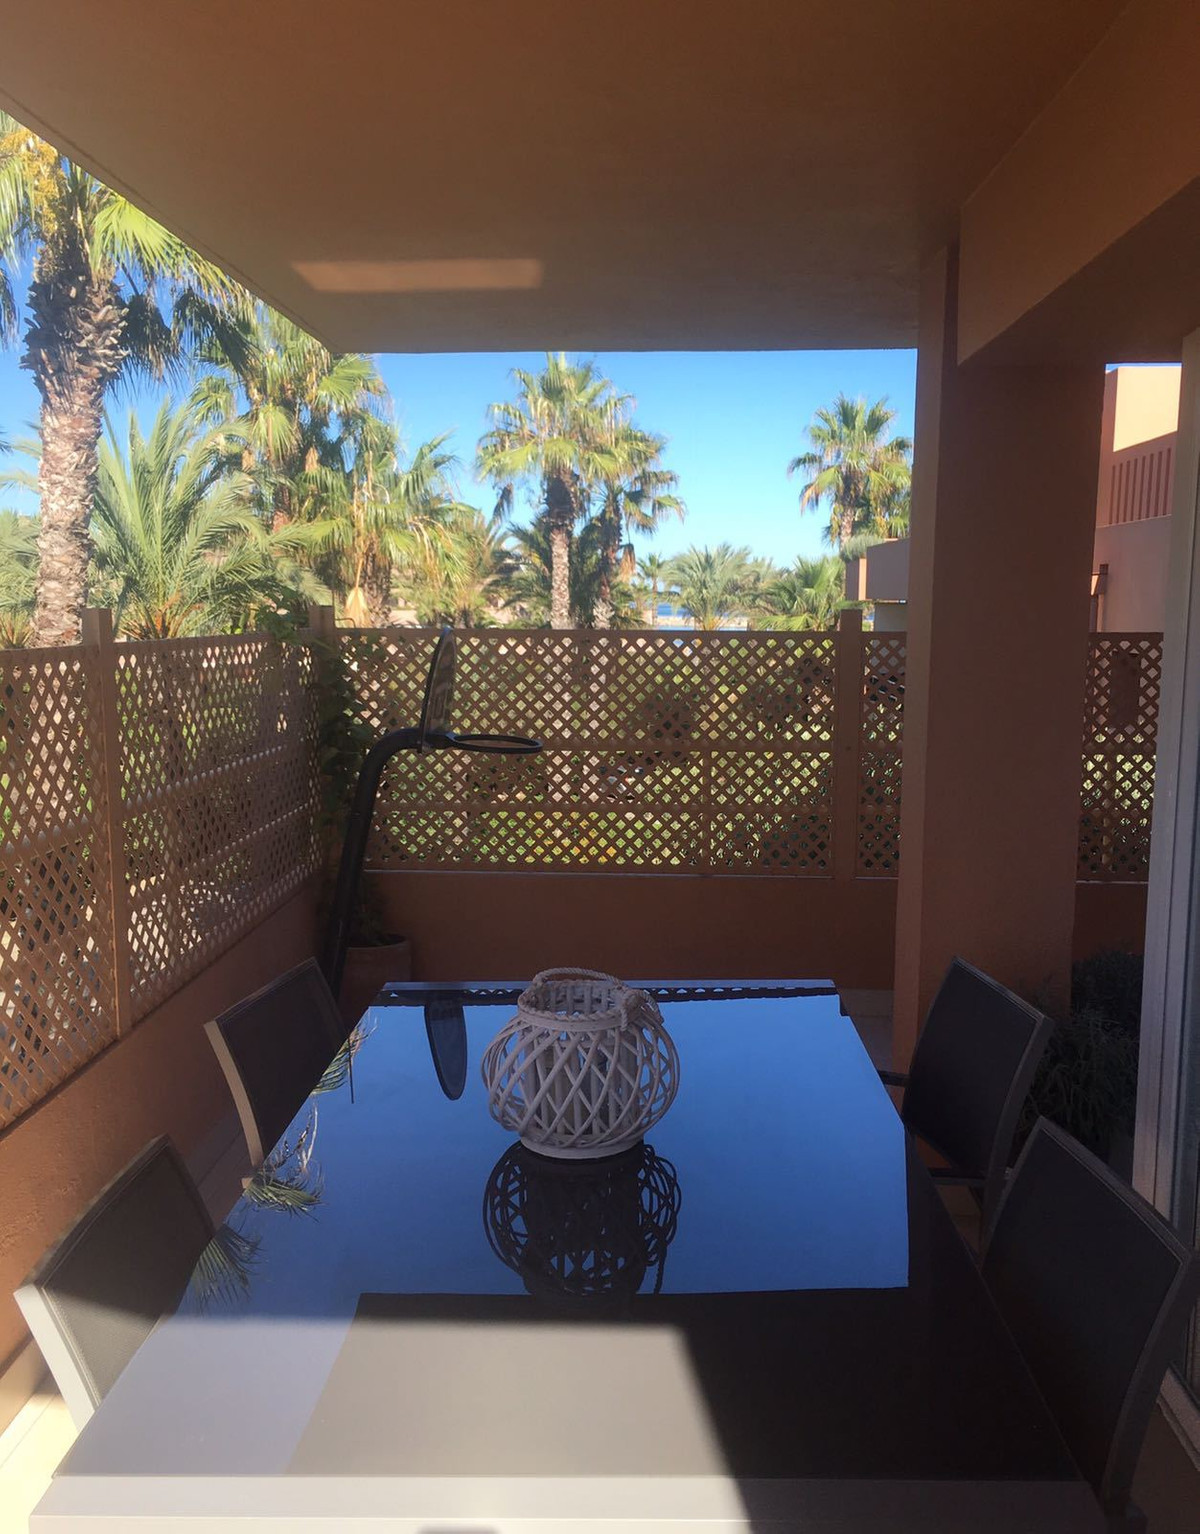 Magnificent sunny apartment with great location near the beach, close to the Octagon Club, tennis an, Spain